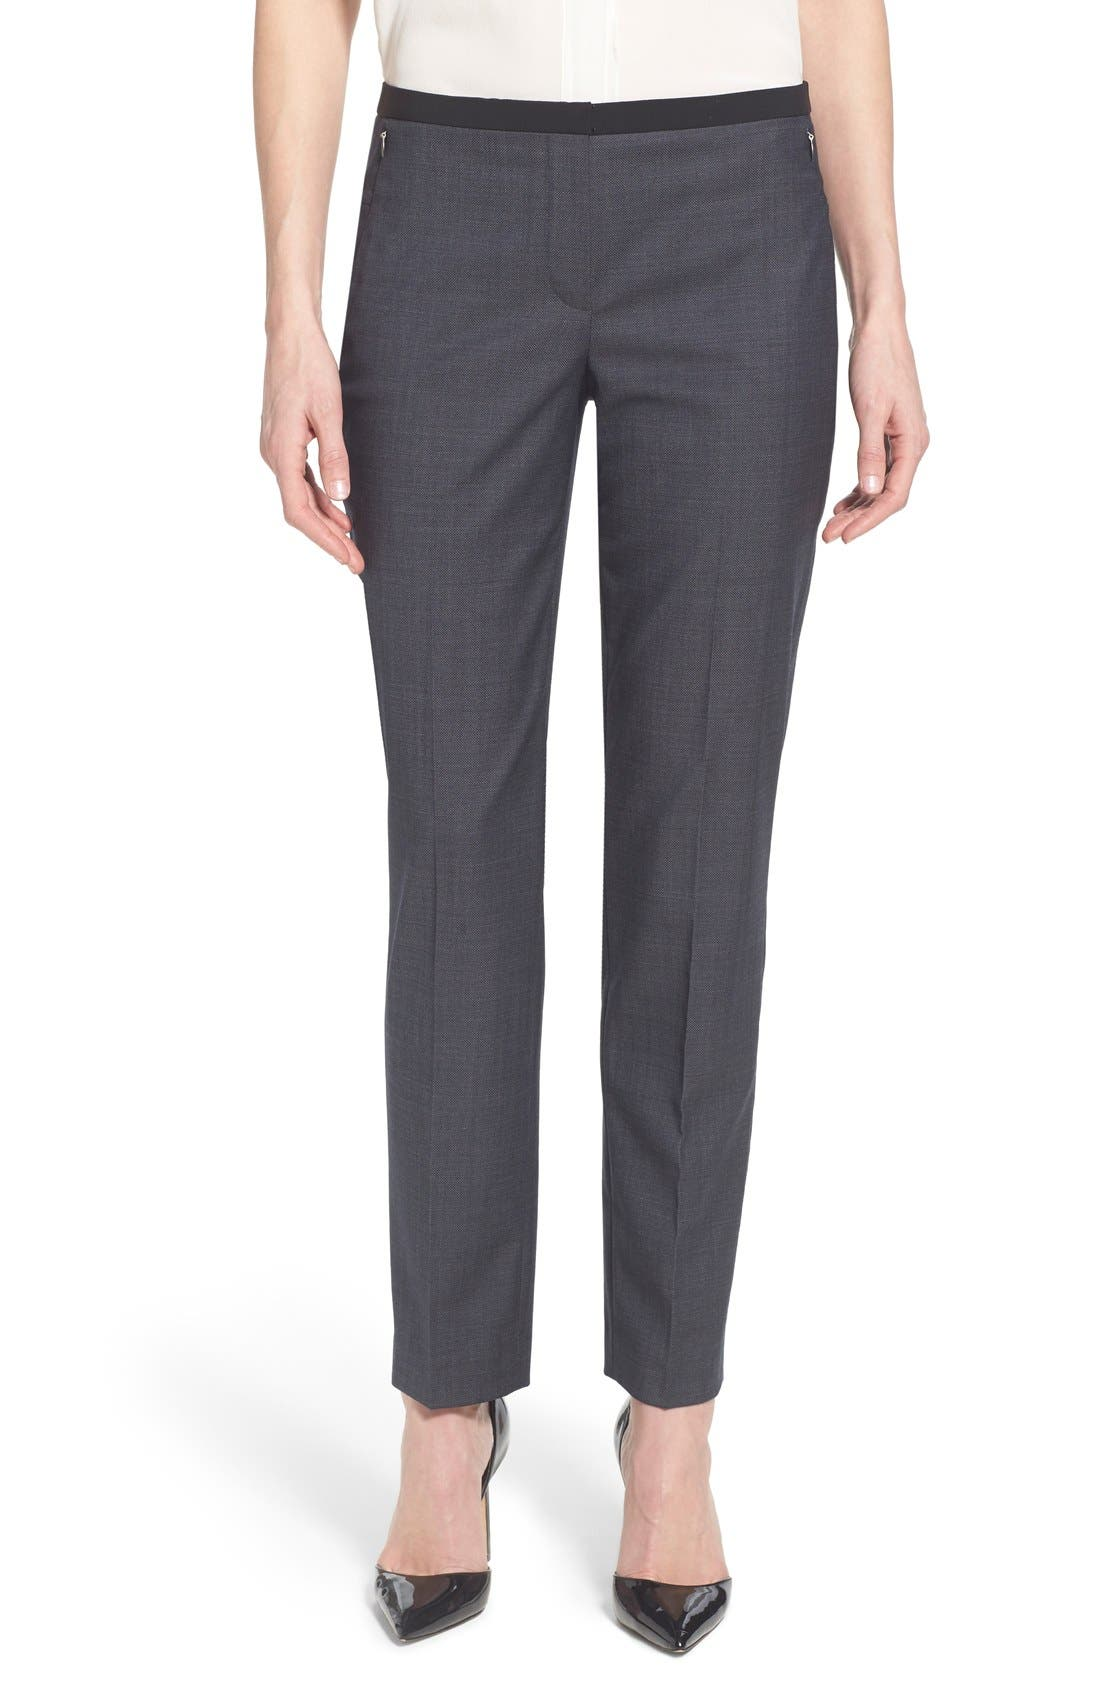 Main Image - Elie Tahari 'Jillian' Slim Fit Stretch Woven Pants